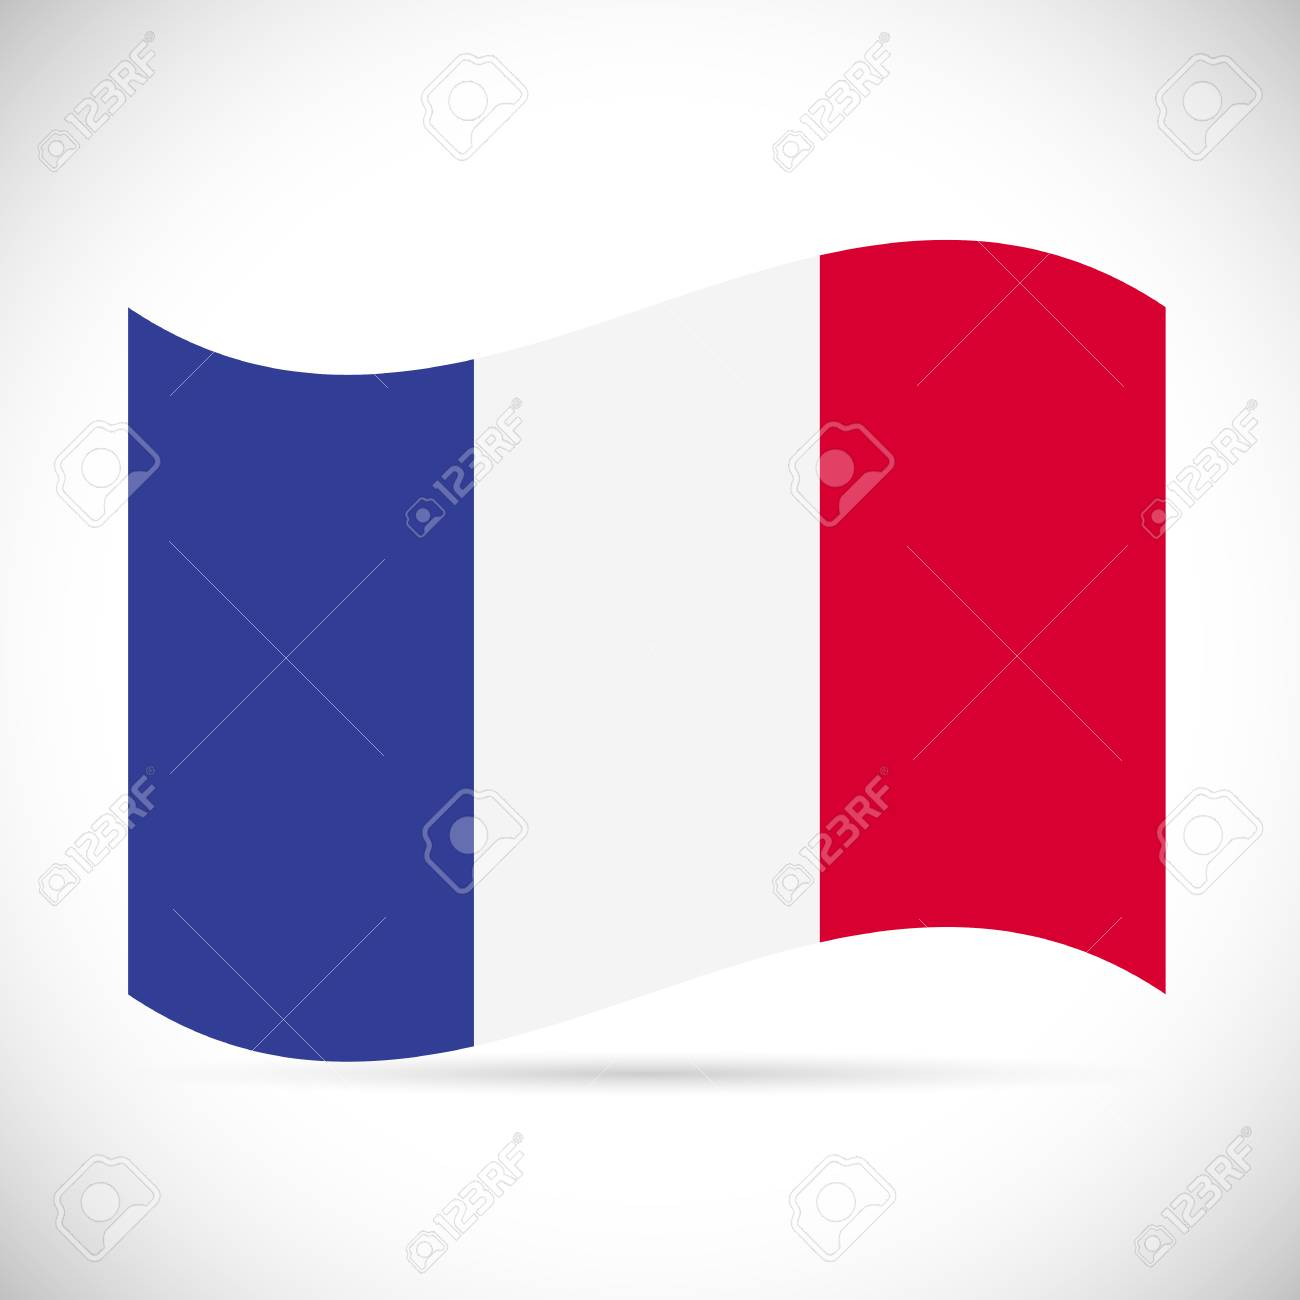 Illustration of the flag of France isolated on a white background. - 97102071